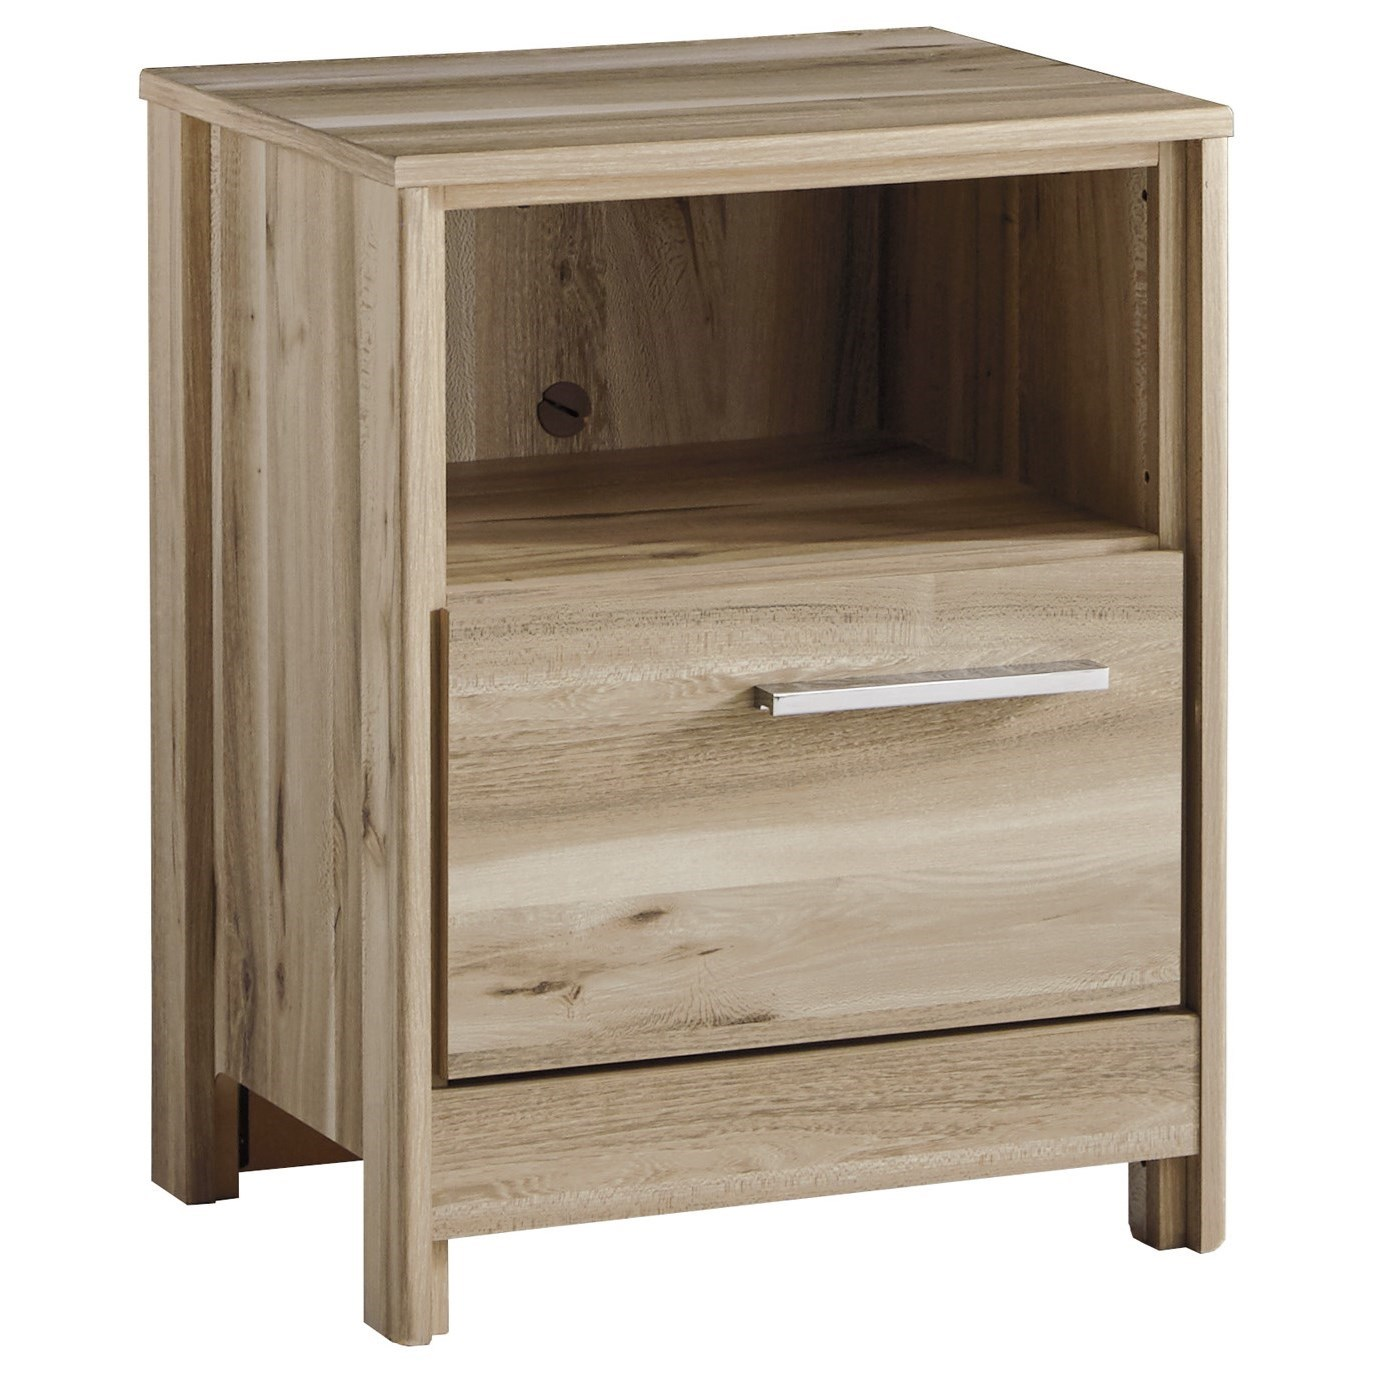 Benchcraft Kianni One Drawer Night Stand - Item Number: B230-91